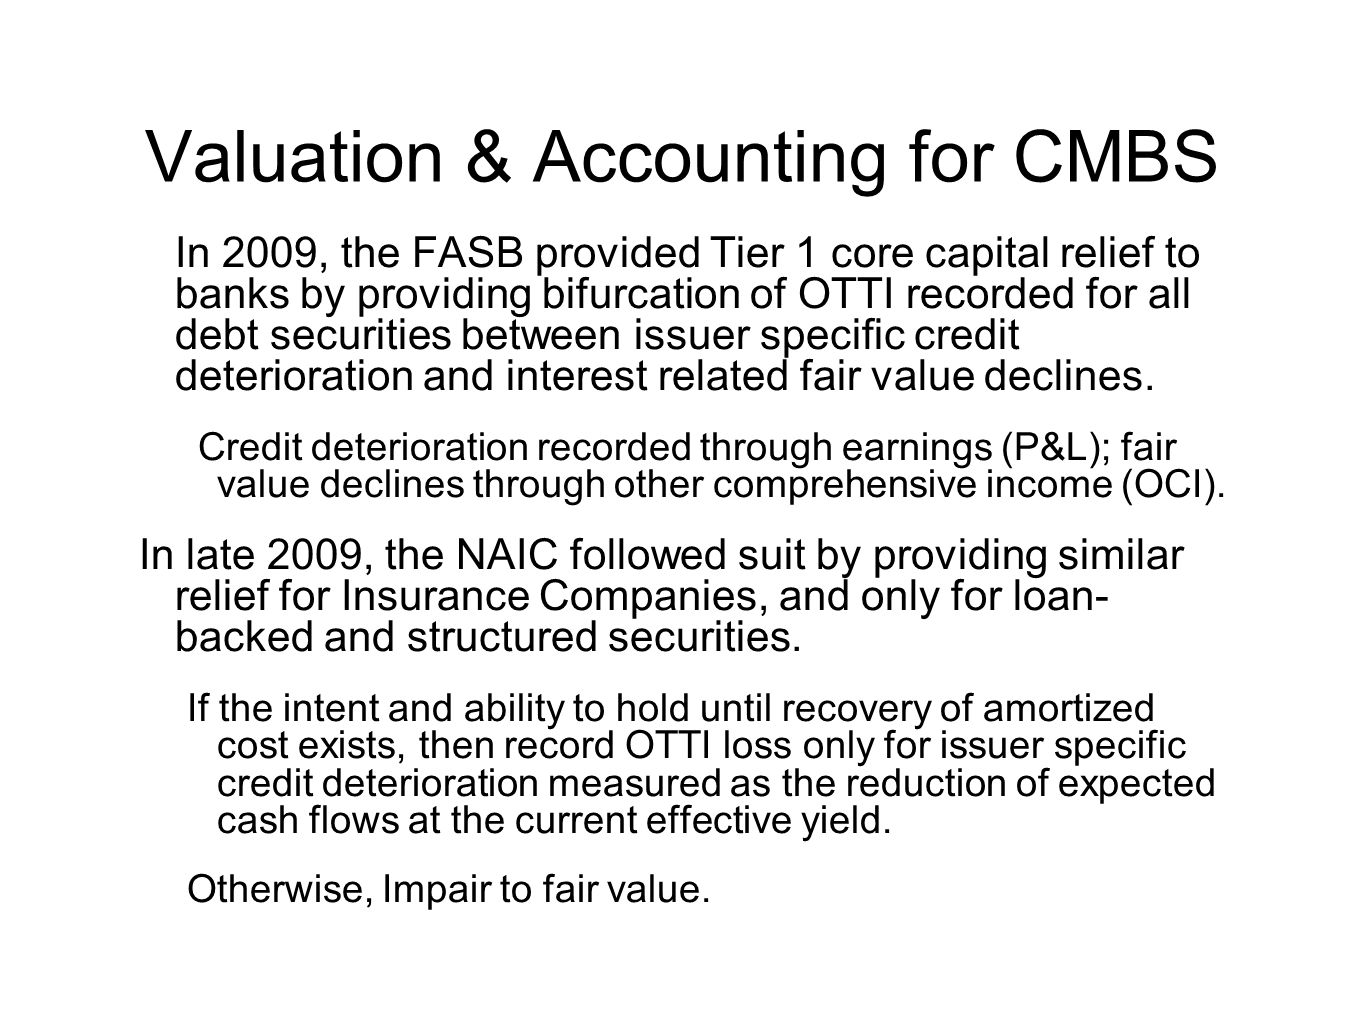 Valuation & Accounting for CMBS In 2009, the FASB provided Tier 1 core capital relief to banks by providing bifurcation of OTTI recorded for all debt